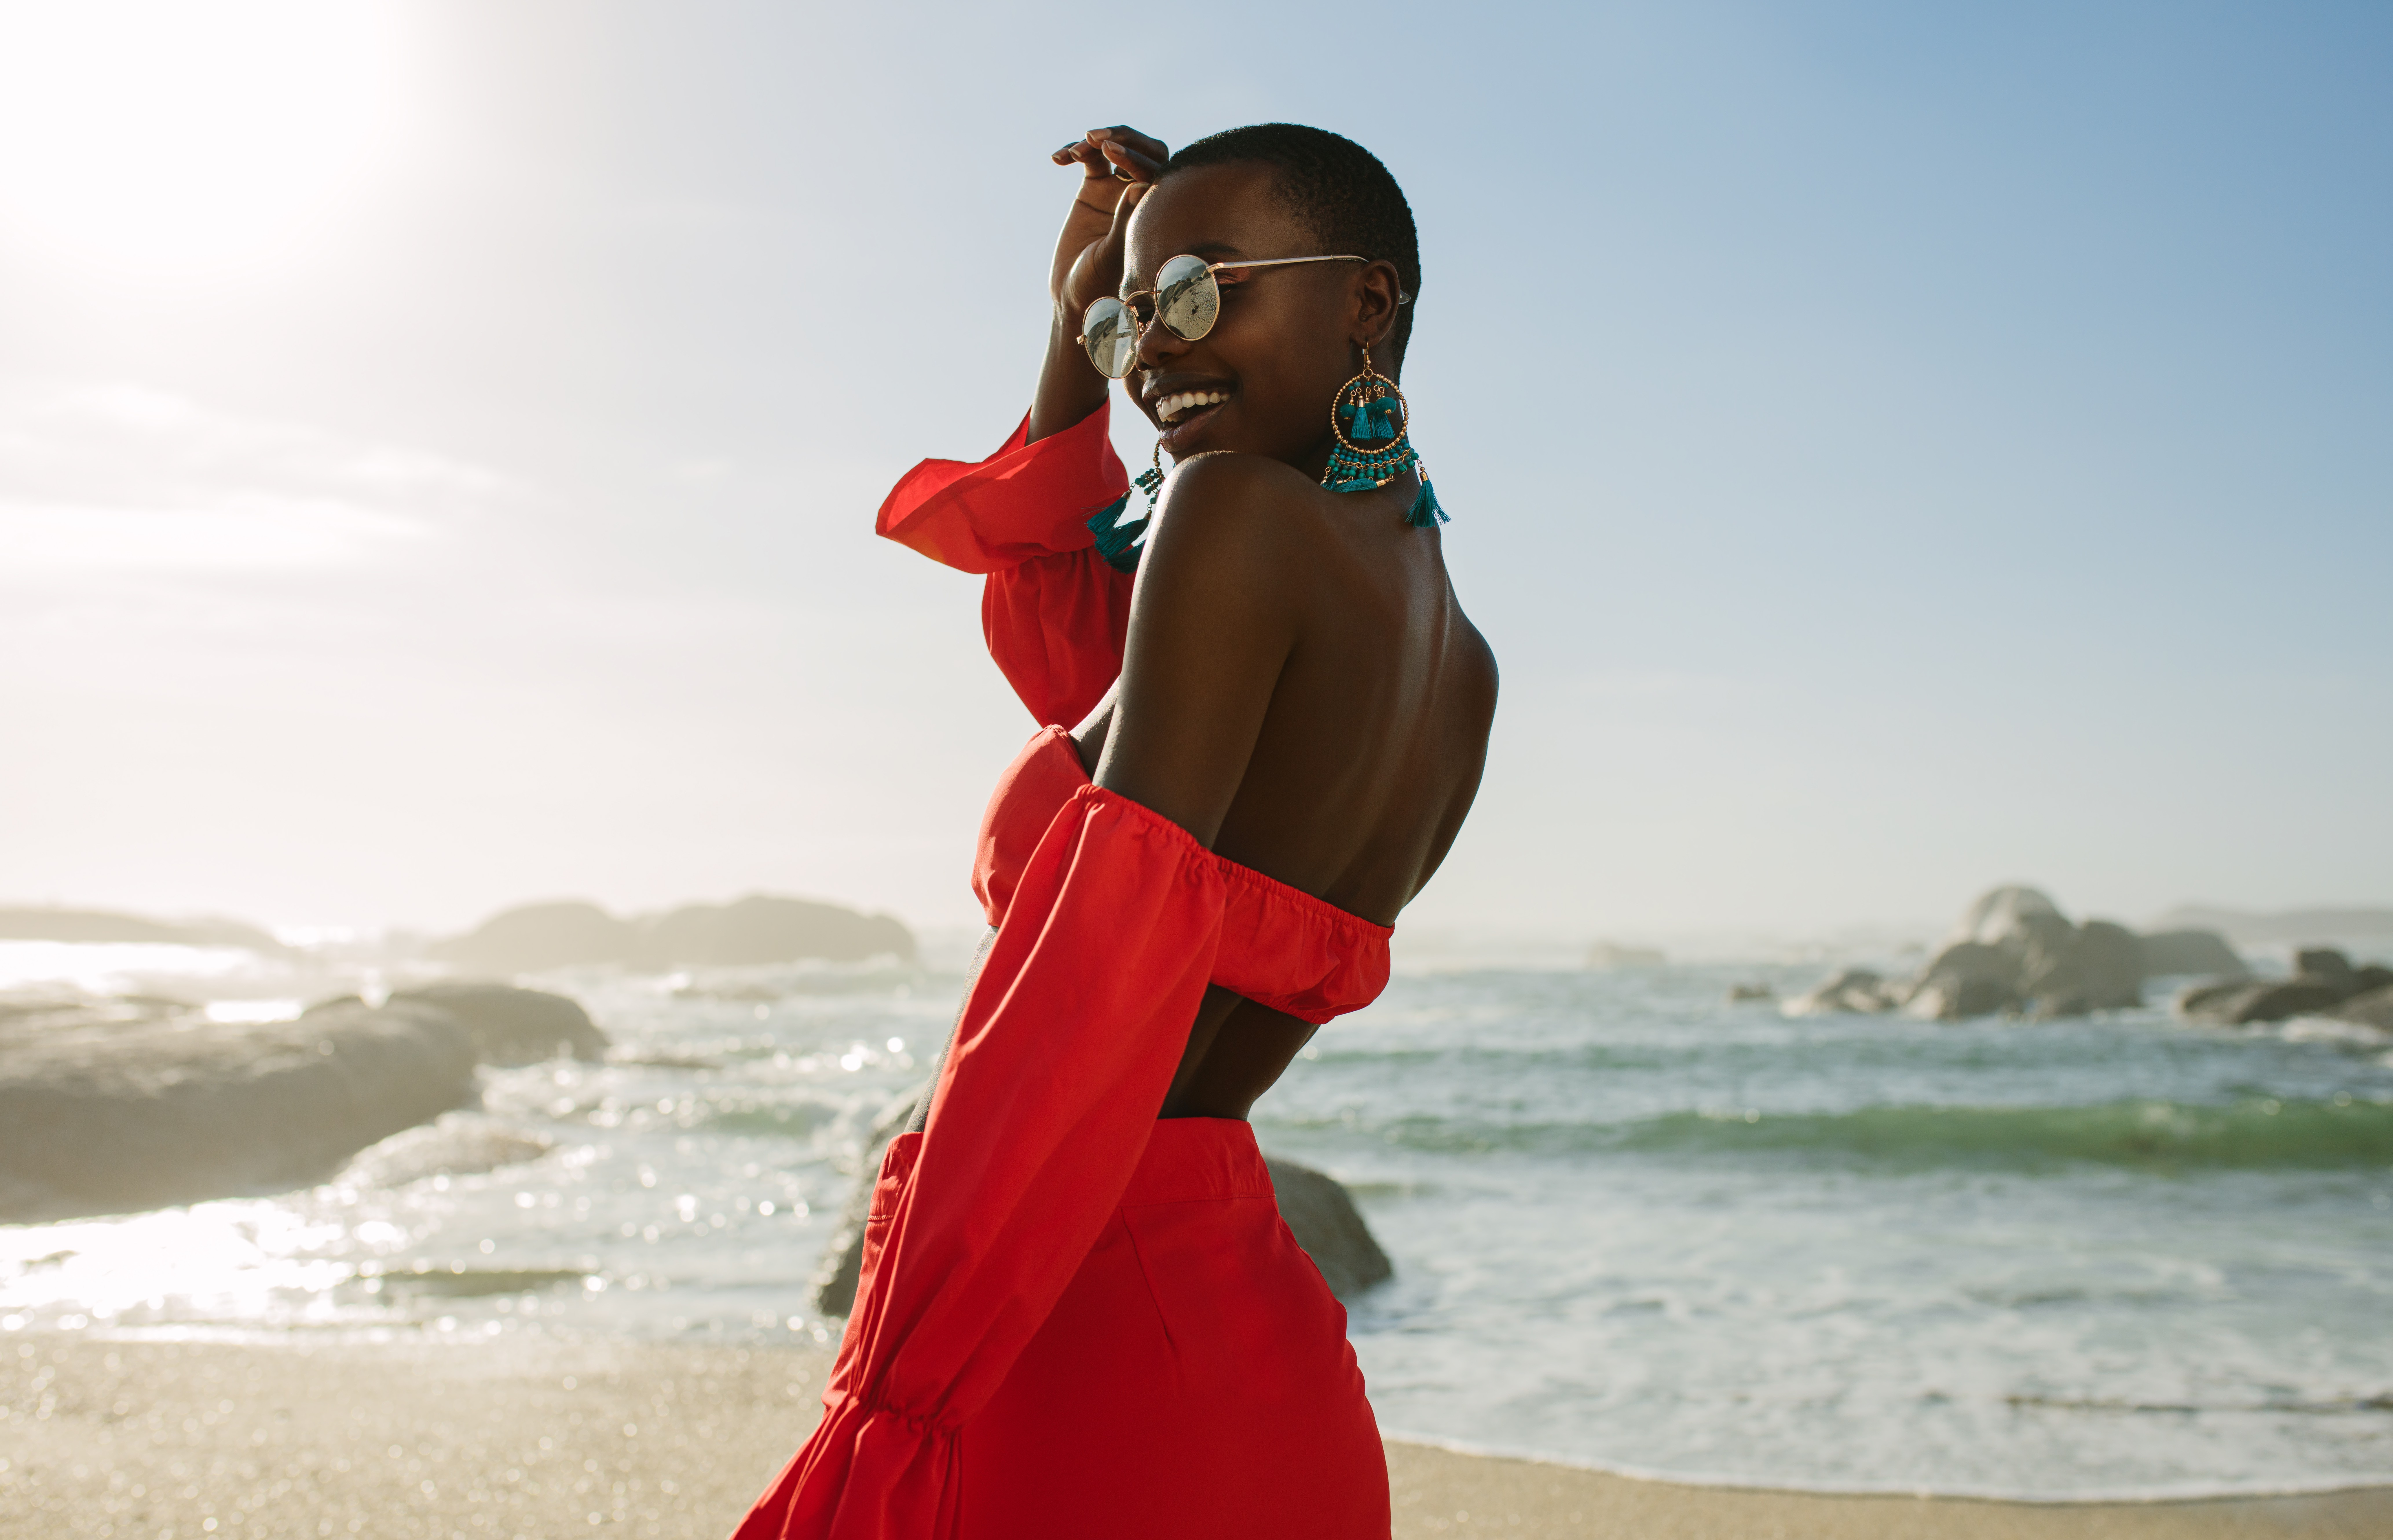 Beautiful woman in red dress on the beach